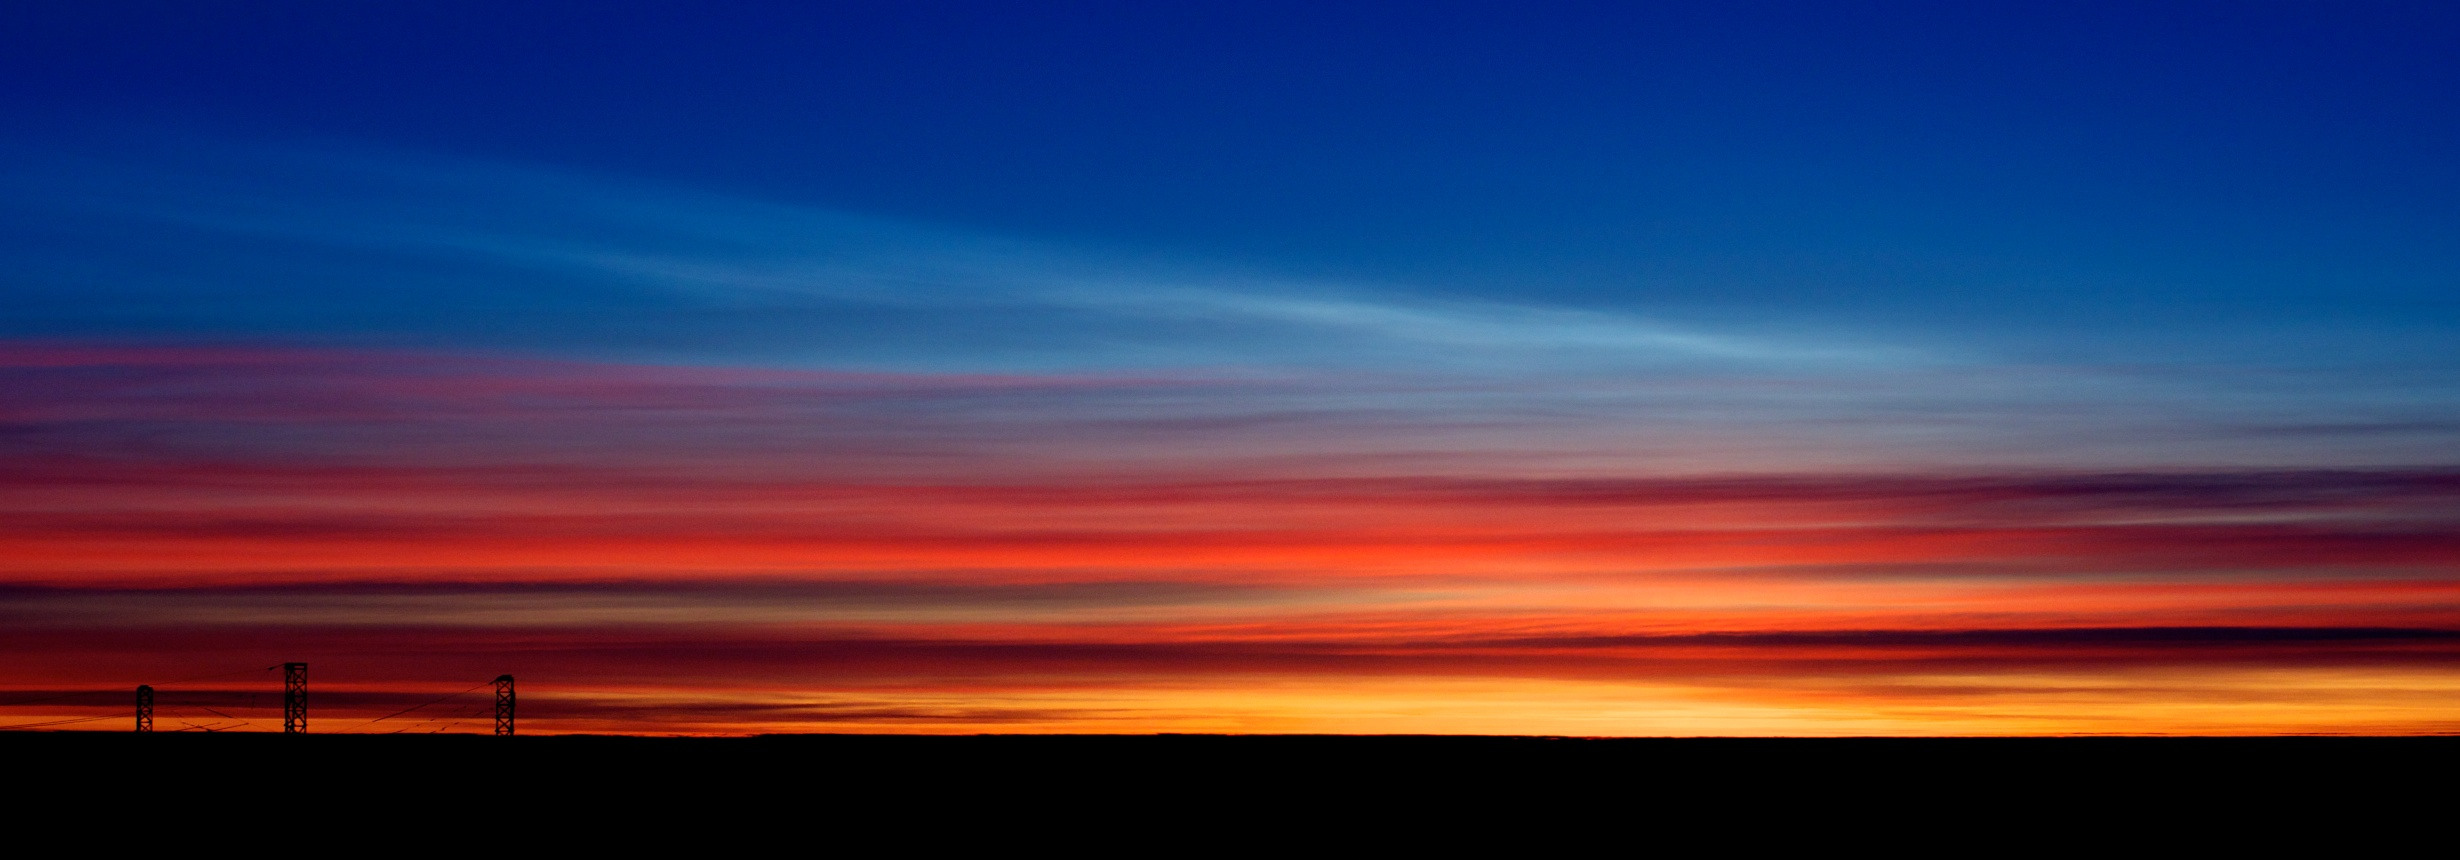 Polar stratospheric clouds. Photo courtesy of Wikipedia.